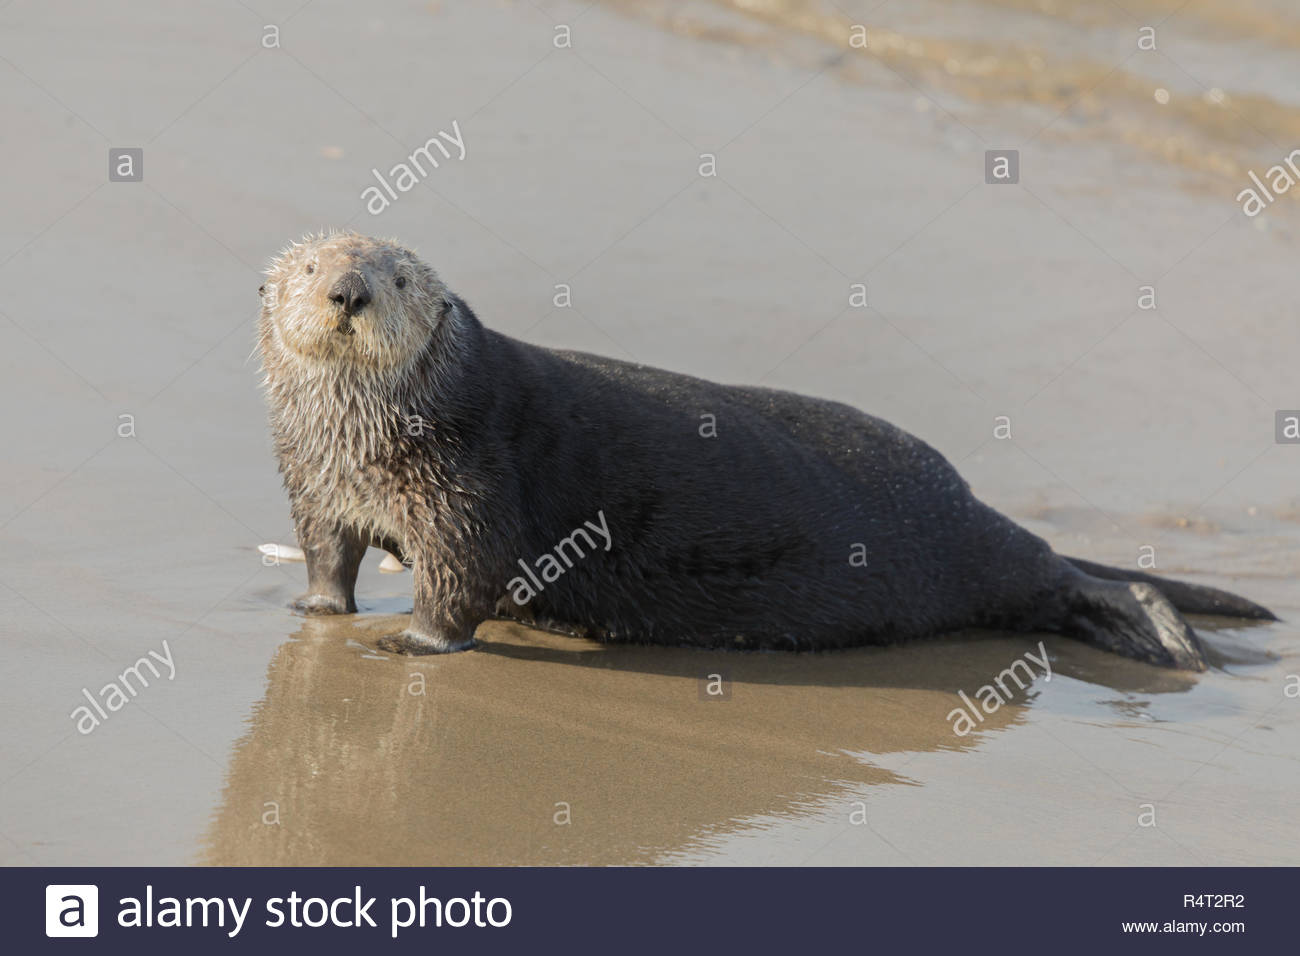 Sea Otter comes out of the water for a mid-day rest. Stock Photo